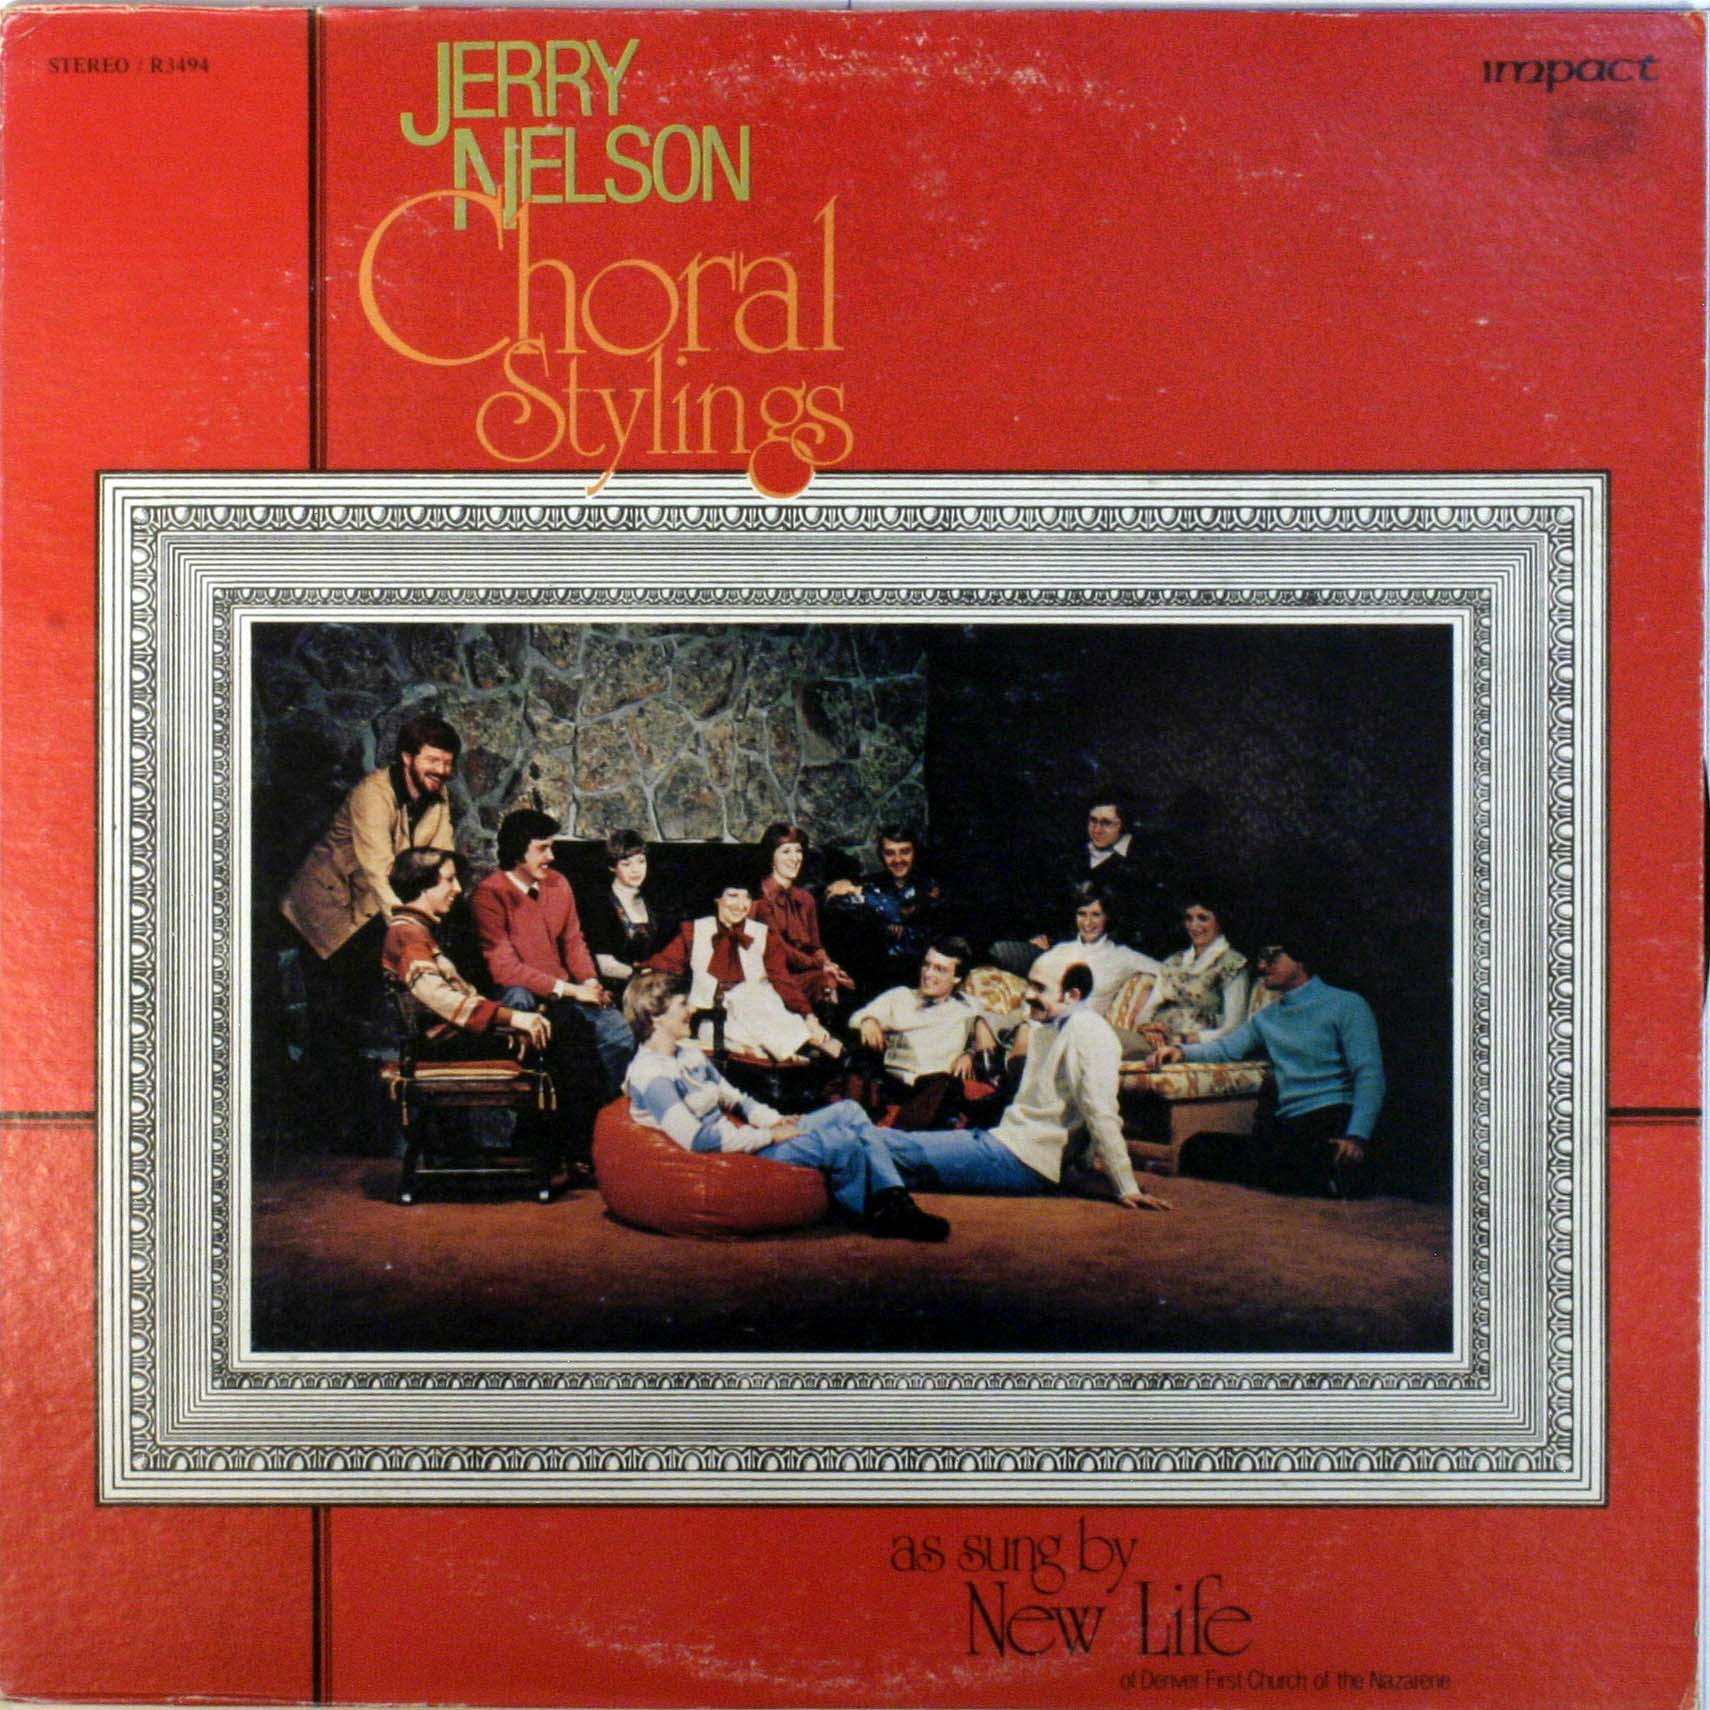 Jerry Nelson Choral Stylings